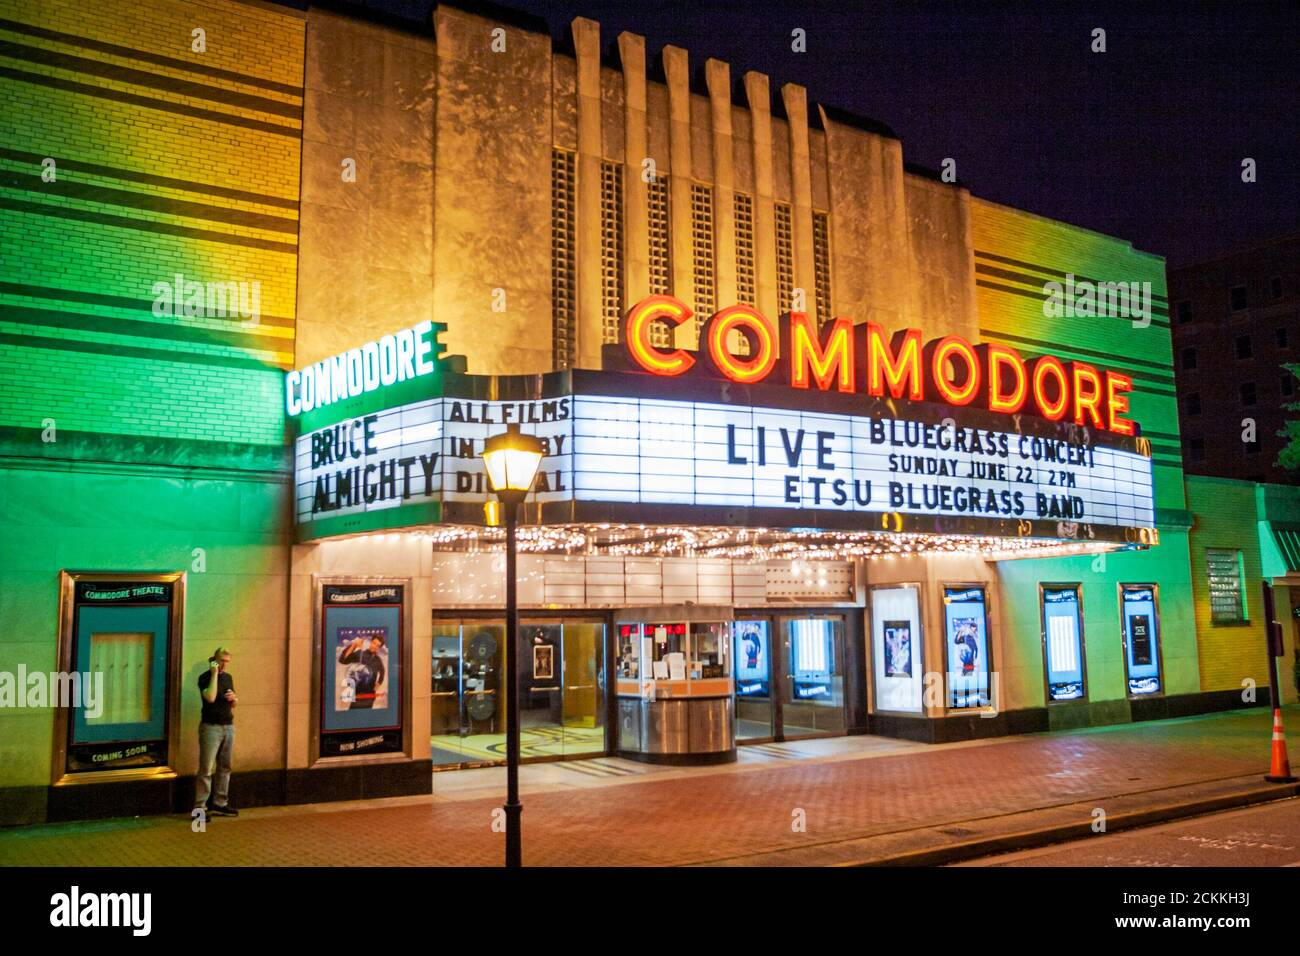 Virginia Portsmouth High Street Commodore Theatre Theatre, 1945 Art Deco cinéma cinéma cinéma cinéma cinéma cinéma cinéma cinéma cinéma cinéma cinéma cinéma, nuit vie nocturne marque lumières, américain Banque D'Images